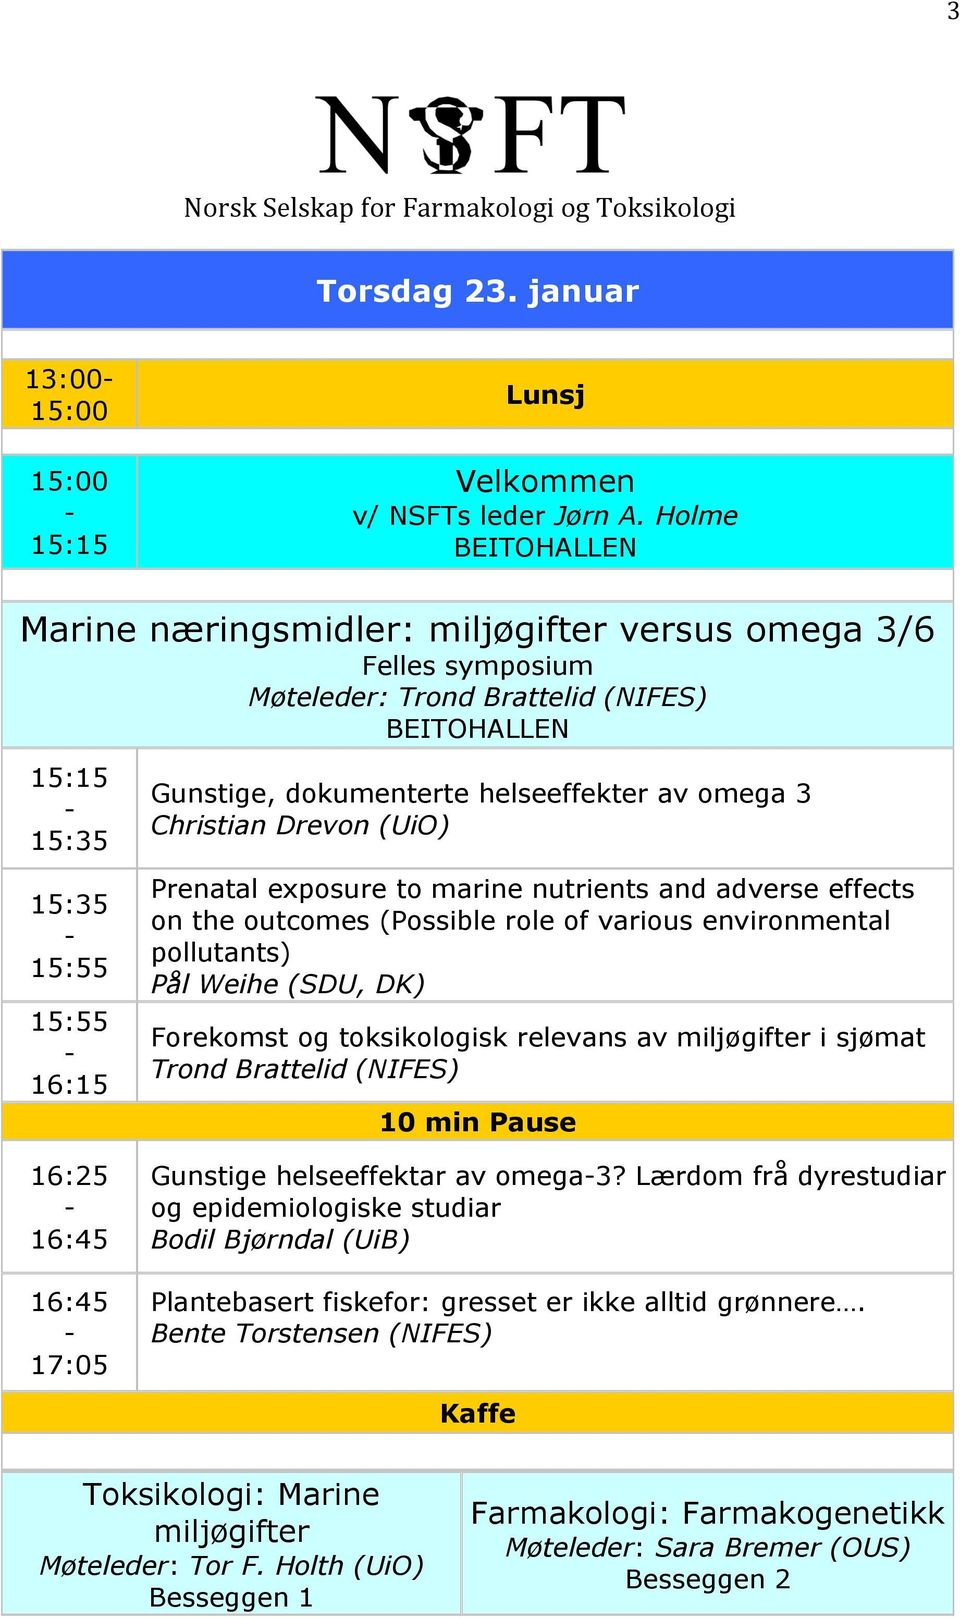 Gunstige, dokumenterte helseeffekter av omega 3 Christian Drevon (UiO) Prenatal exposure to marine nutrients and adverse effects on the outcomes (Possible role of various environmental pollutants)